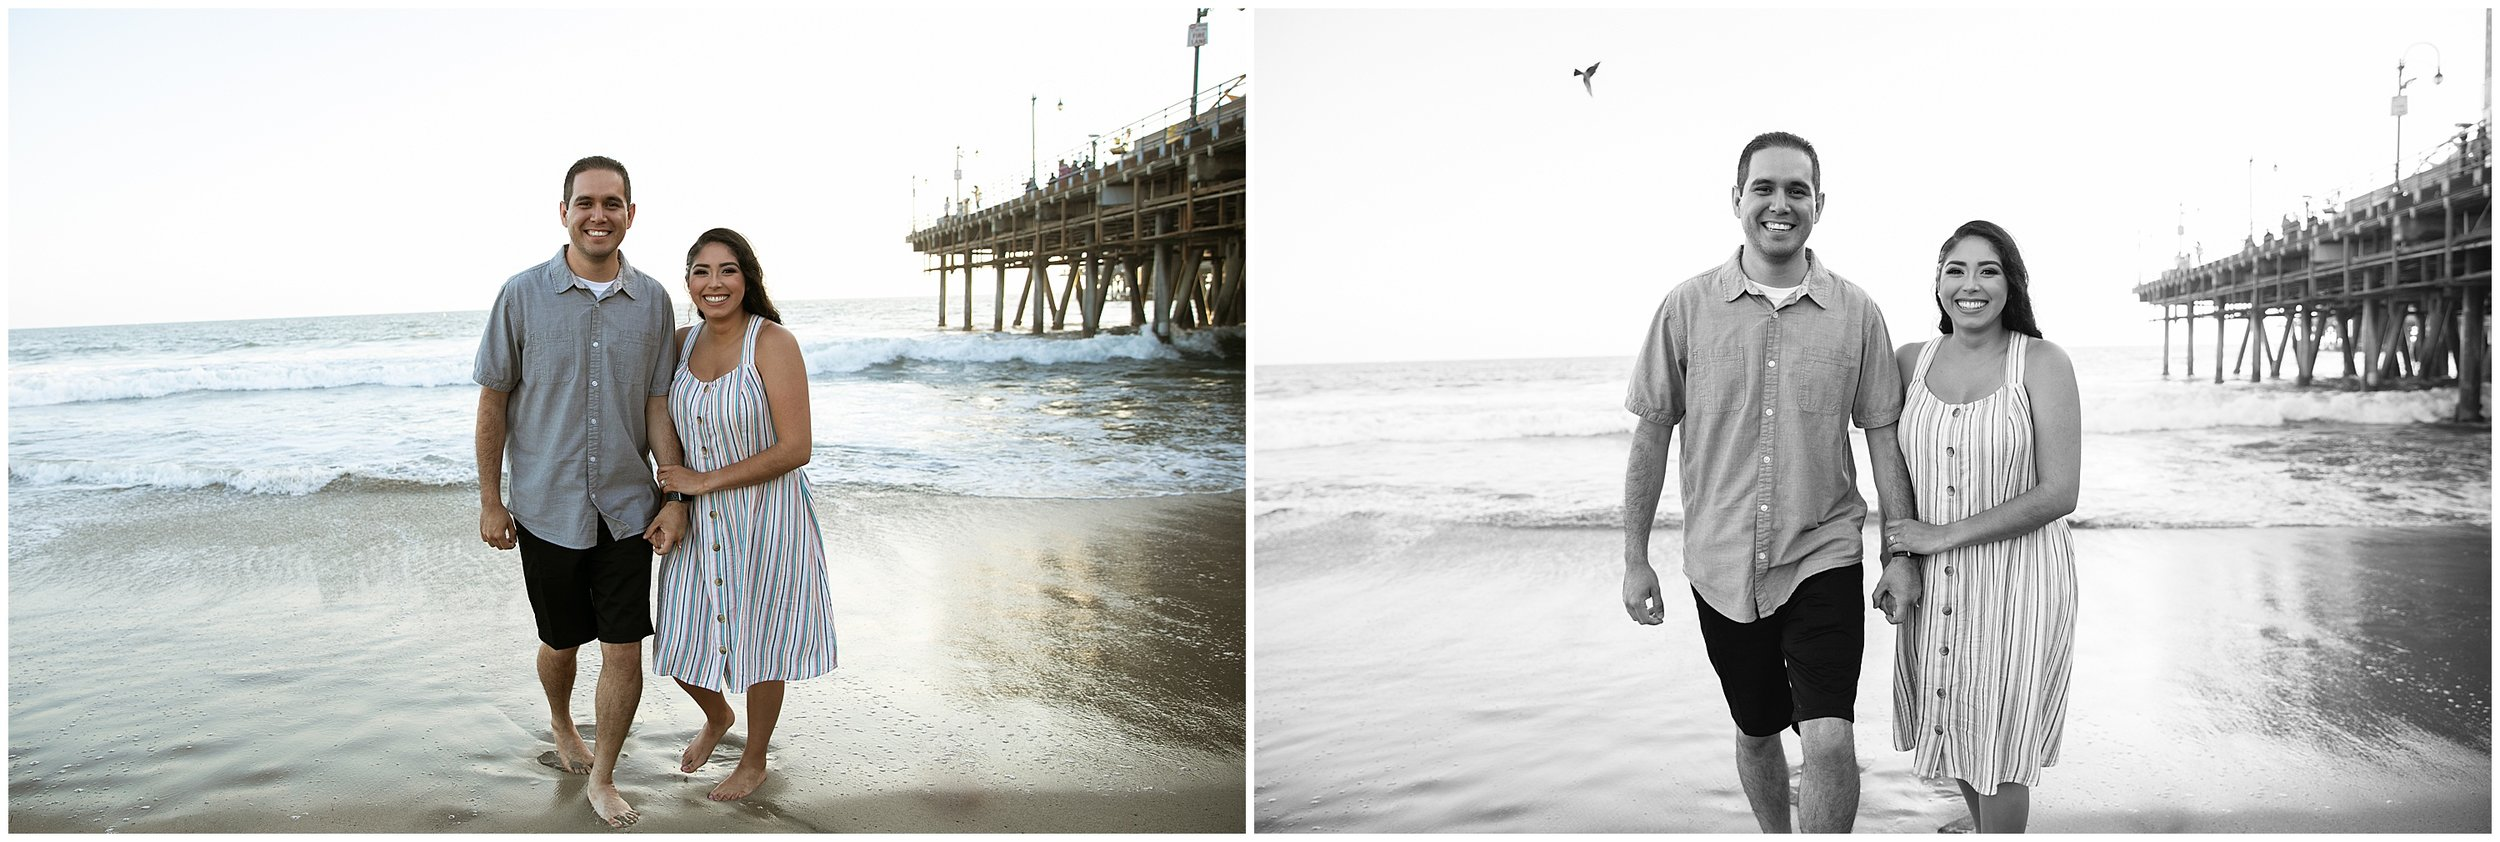 santa monica engagement-kellaphotography-laweddingphotographer_0039.jpg